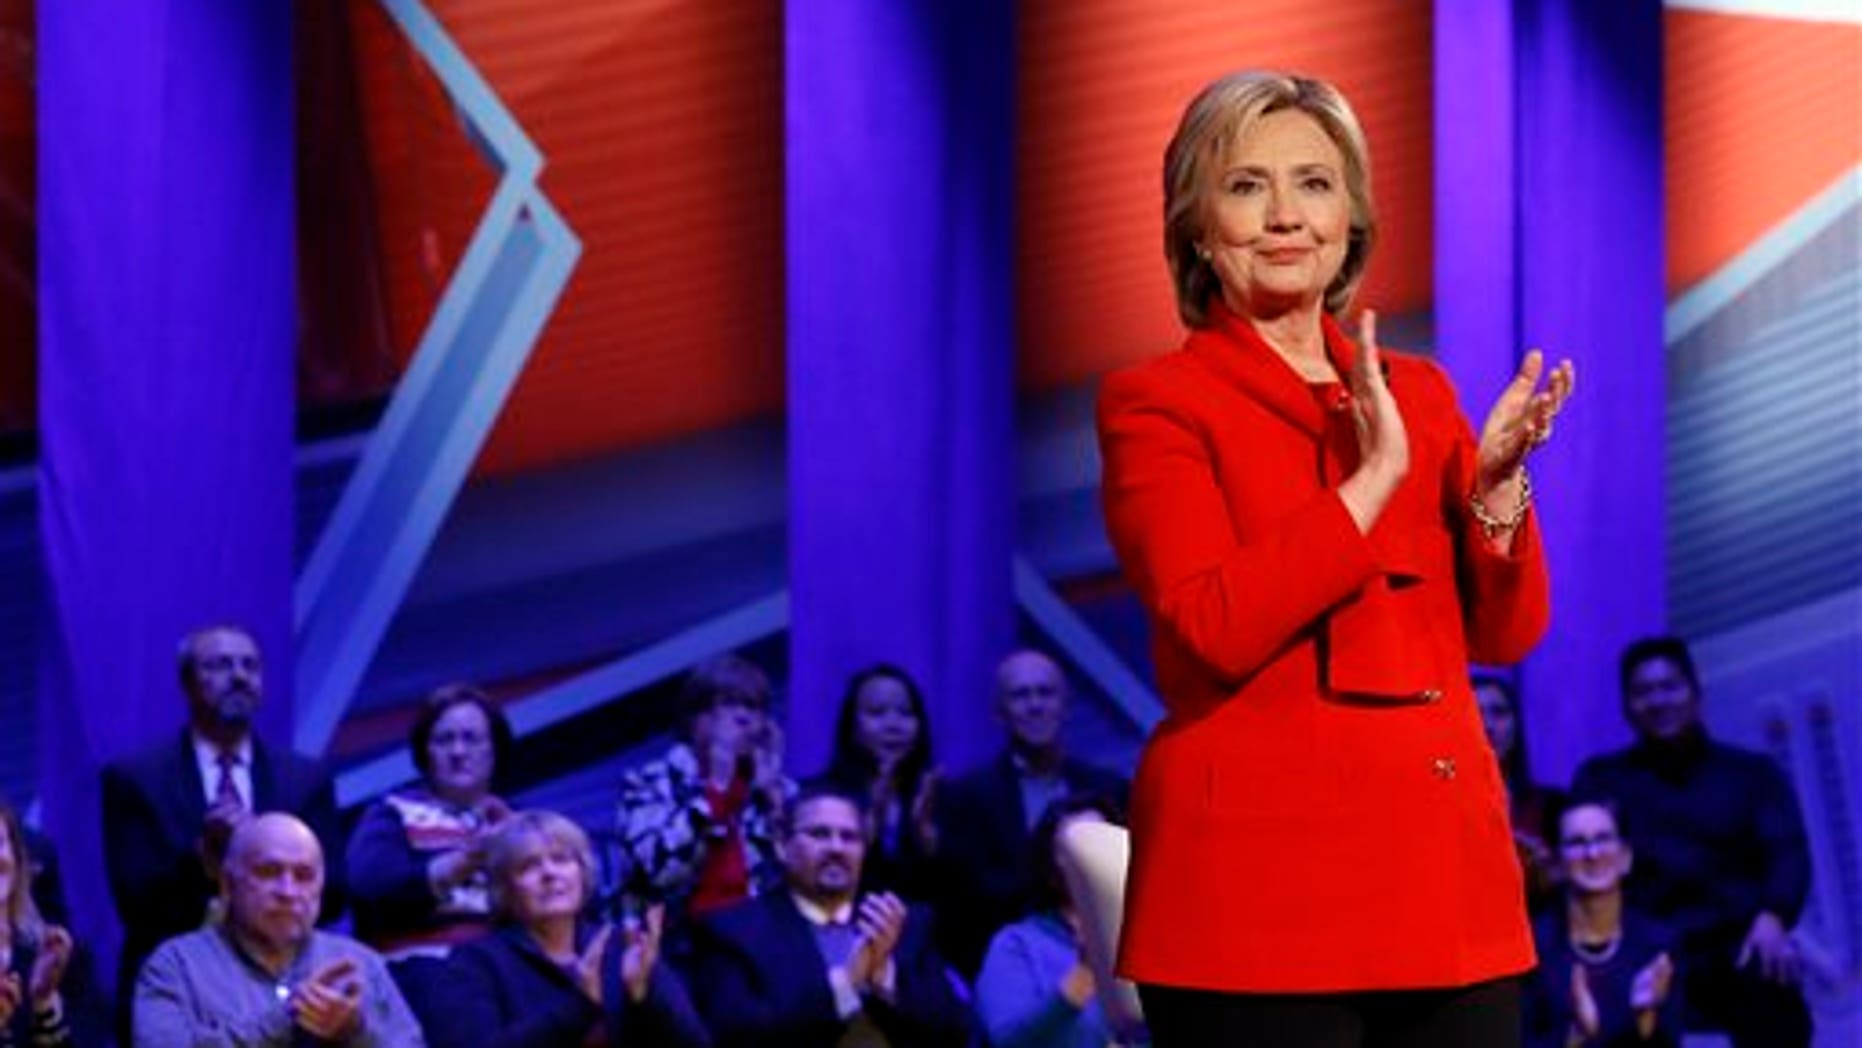 Democratic presidential candidate Hillary Clinton applauds after a CNN town hall at Drake University in Des Moines, Iowa, Monday, Jan. 25, 2016. (AP Photo/Patrick Semansky)